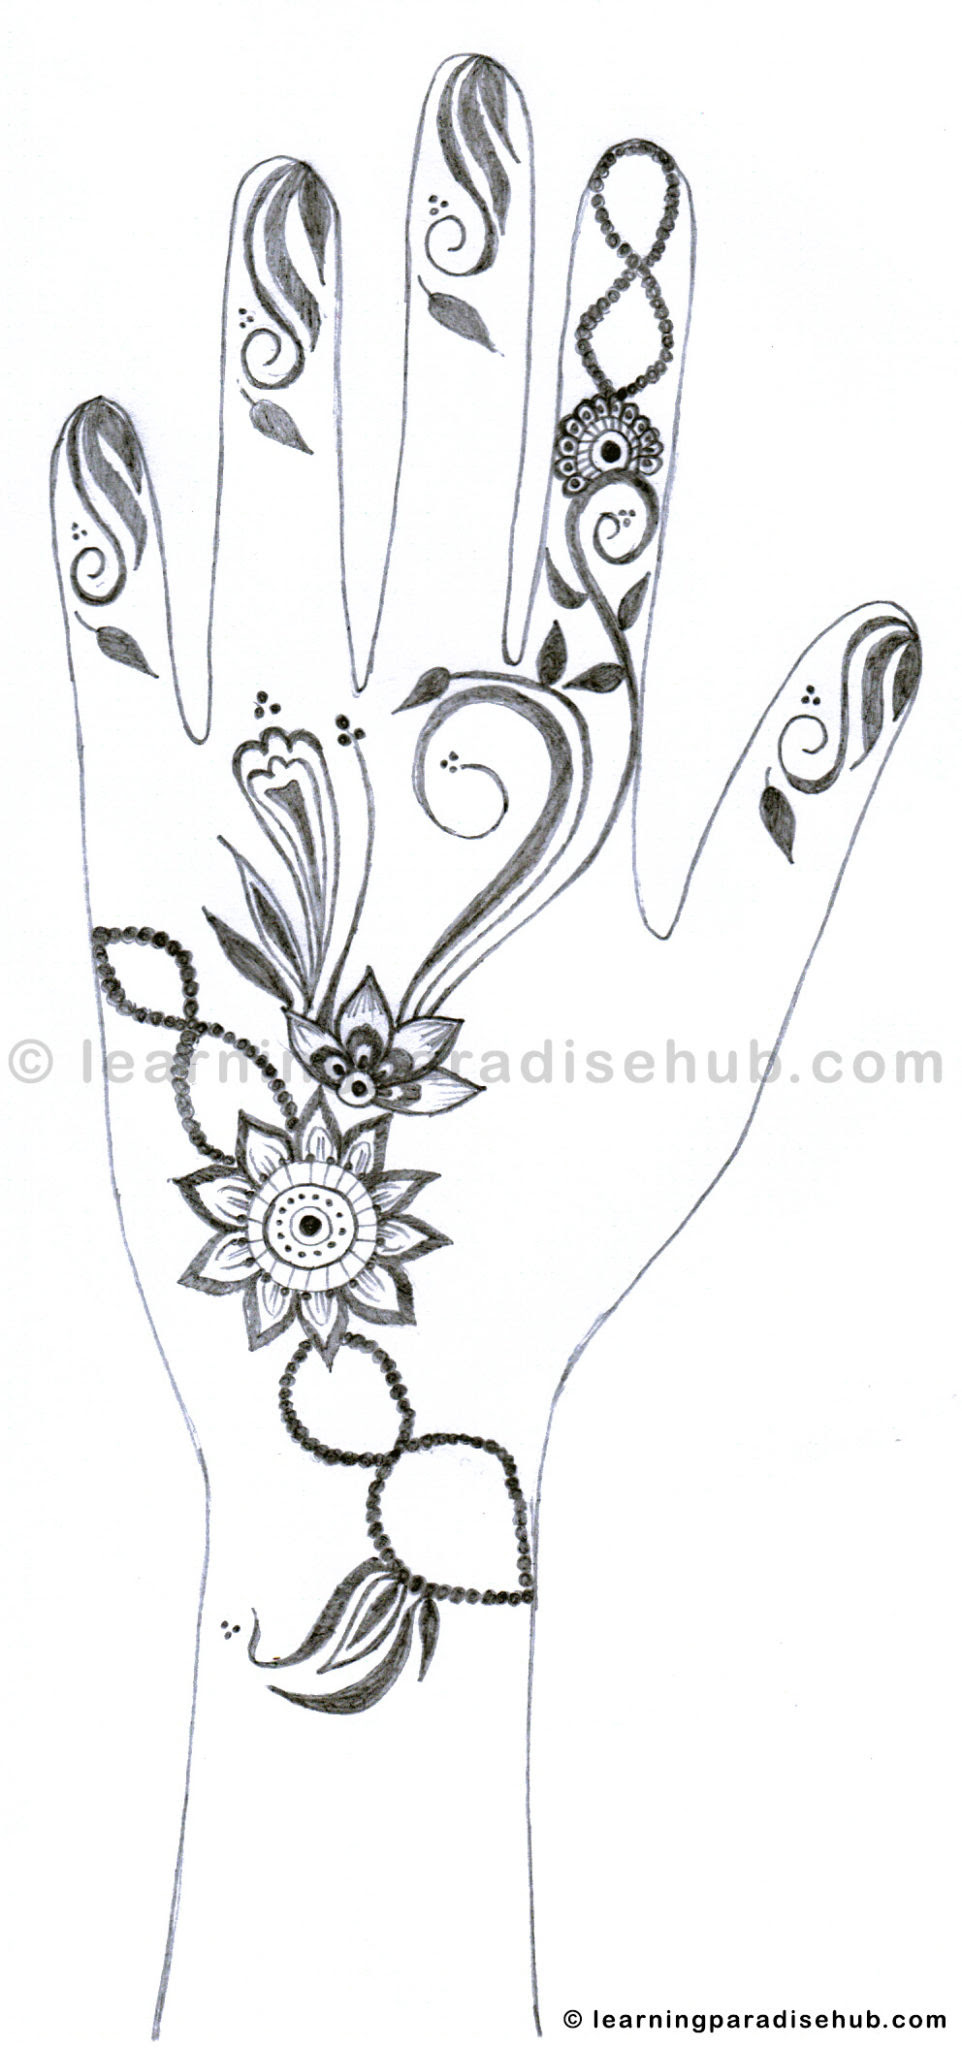 Simple Mehndi Designs For Beginners On Paper Most simple mehndi designs for beginners. simple mehndi designs for beginners on